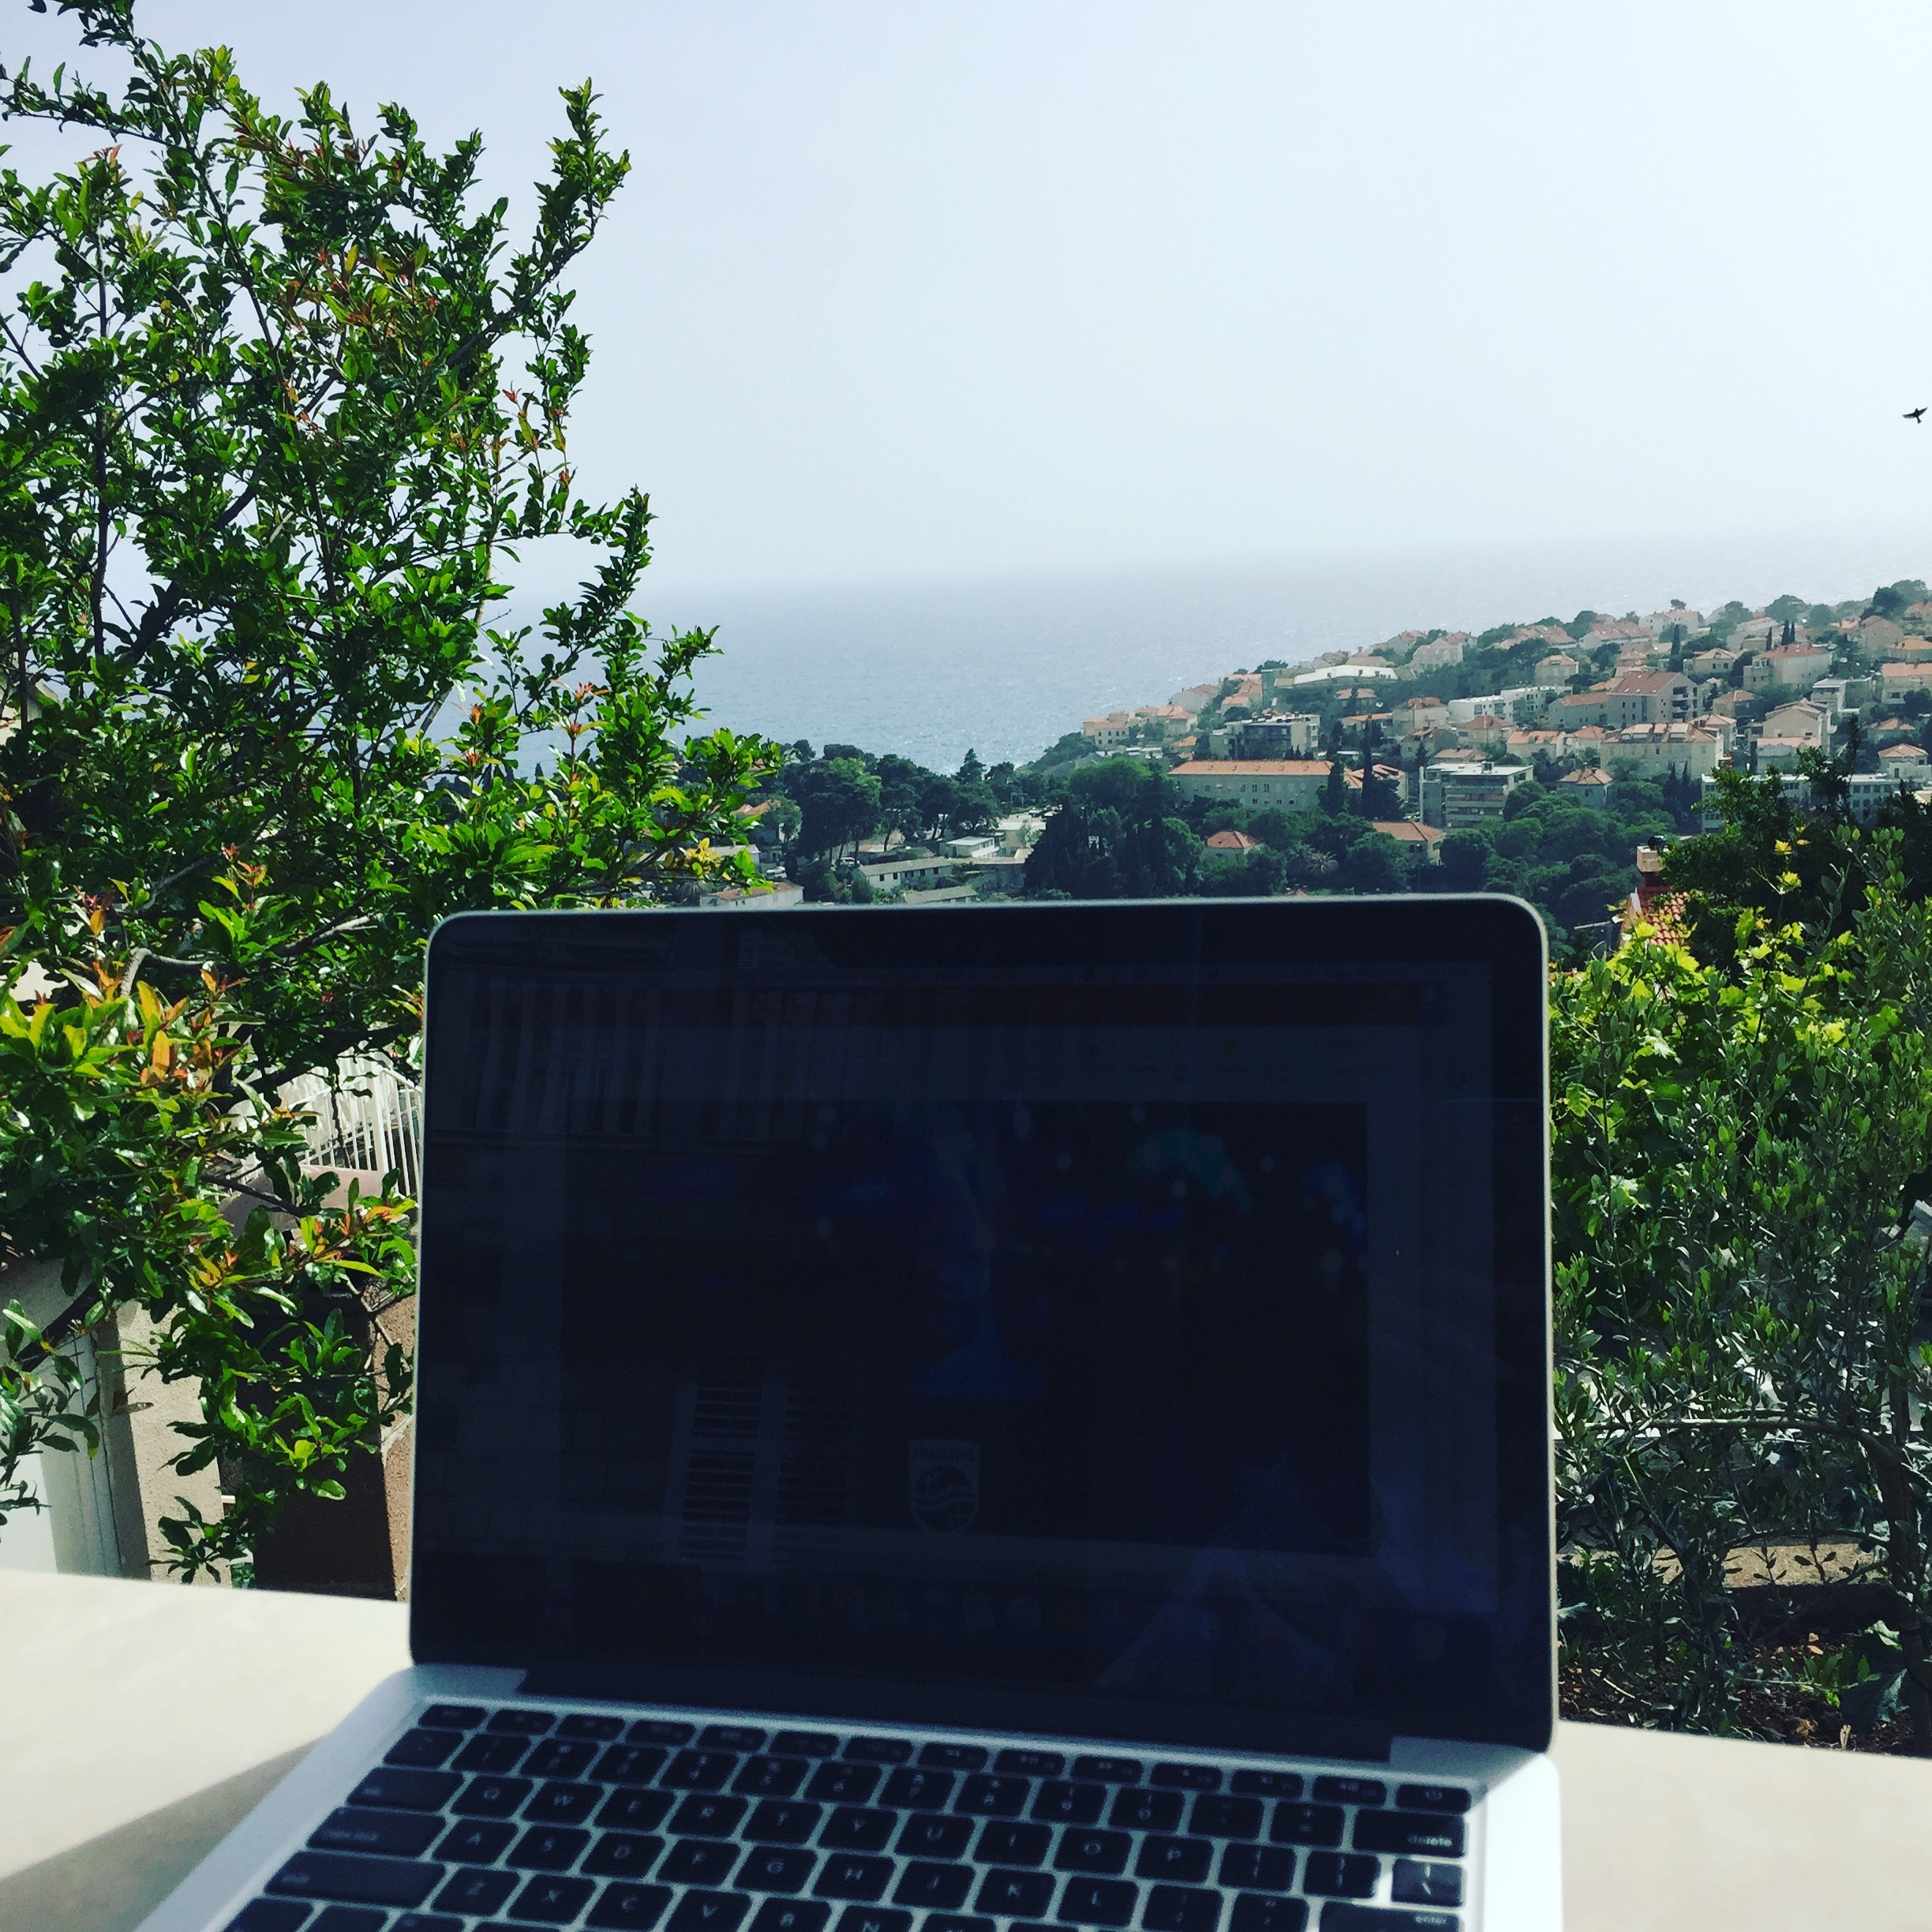 Working from an AirBnB in Dubrovnik